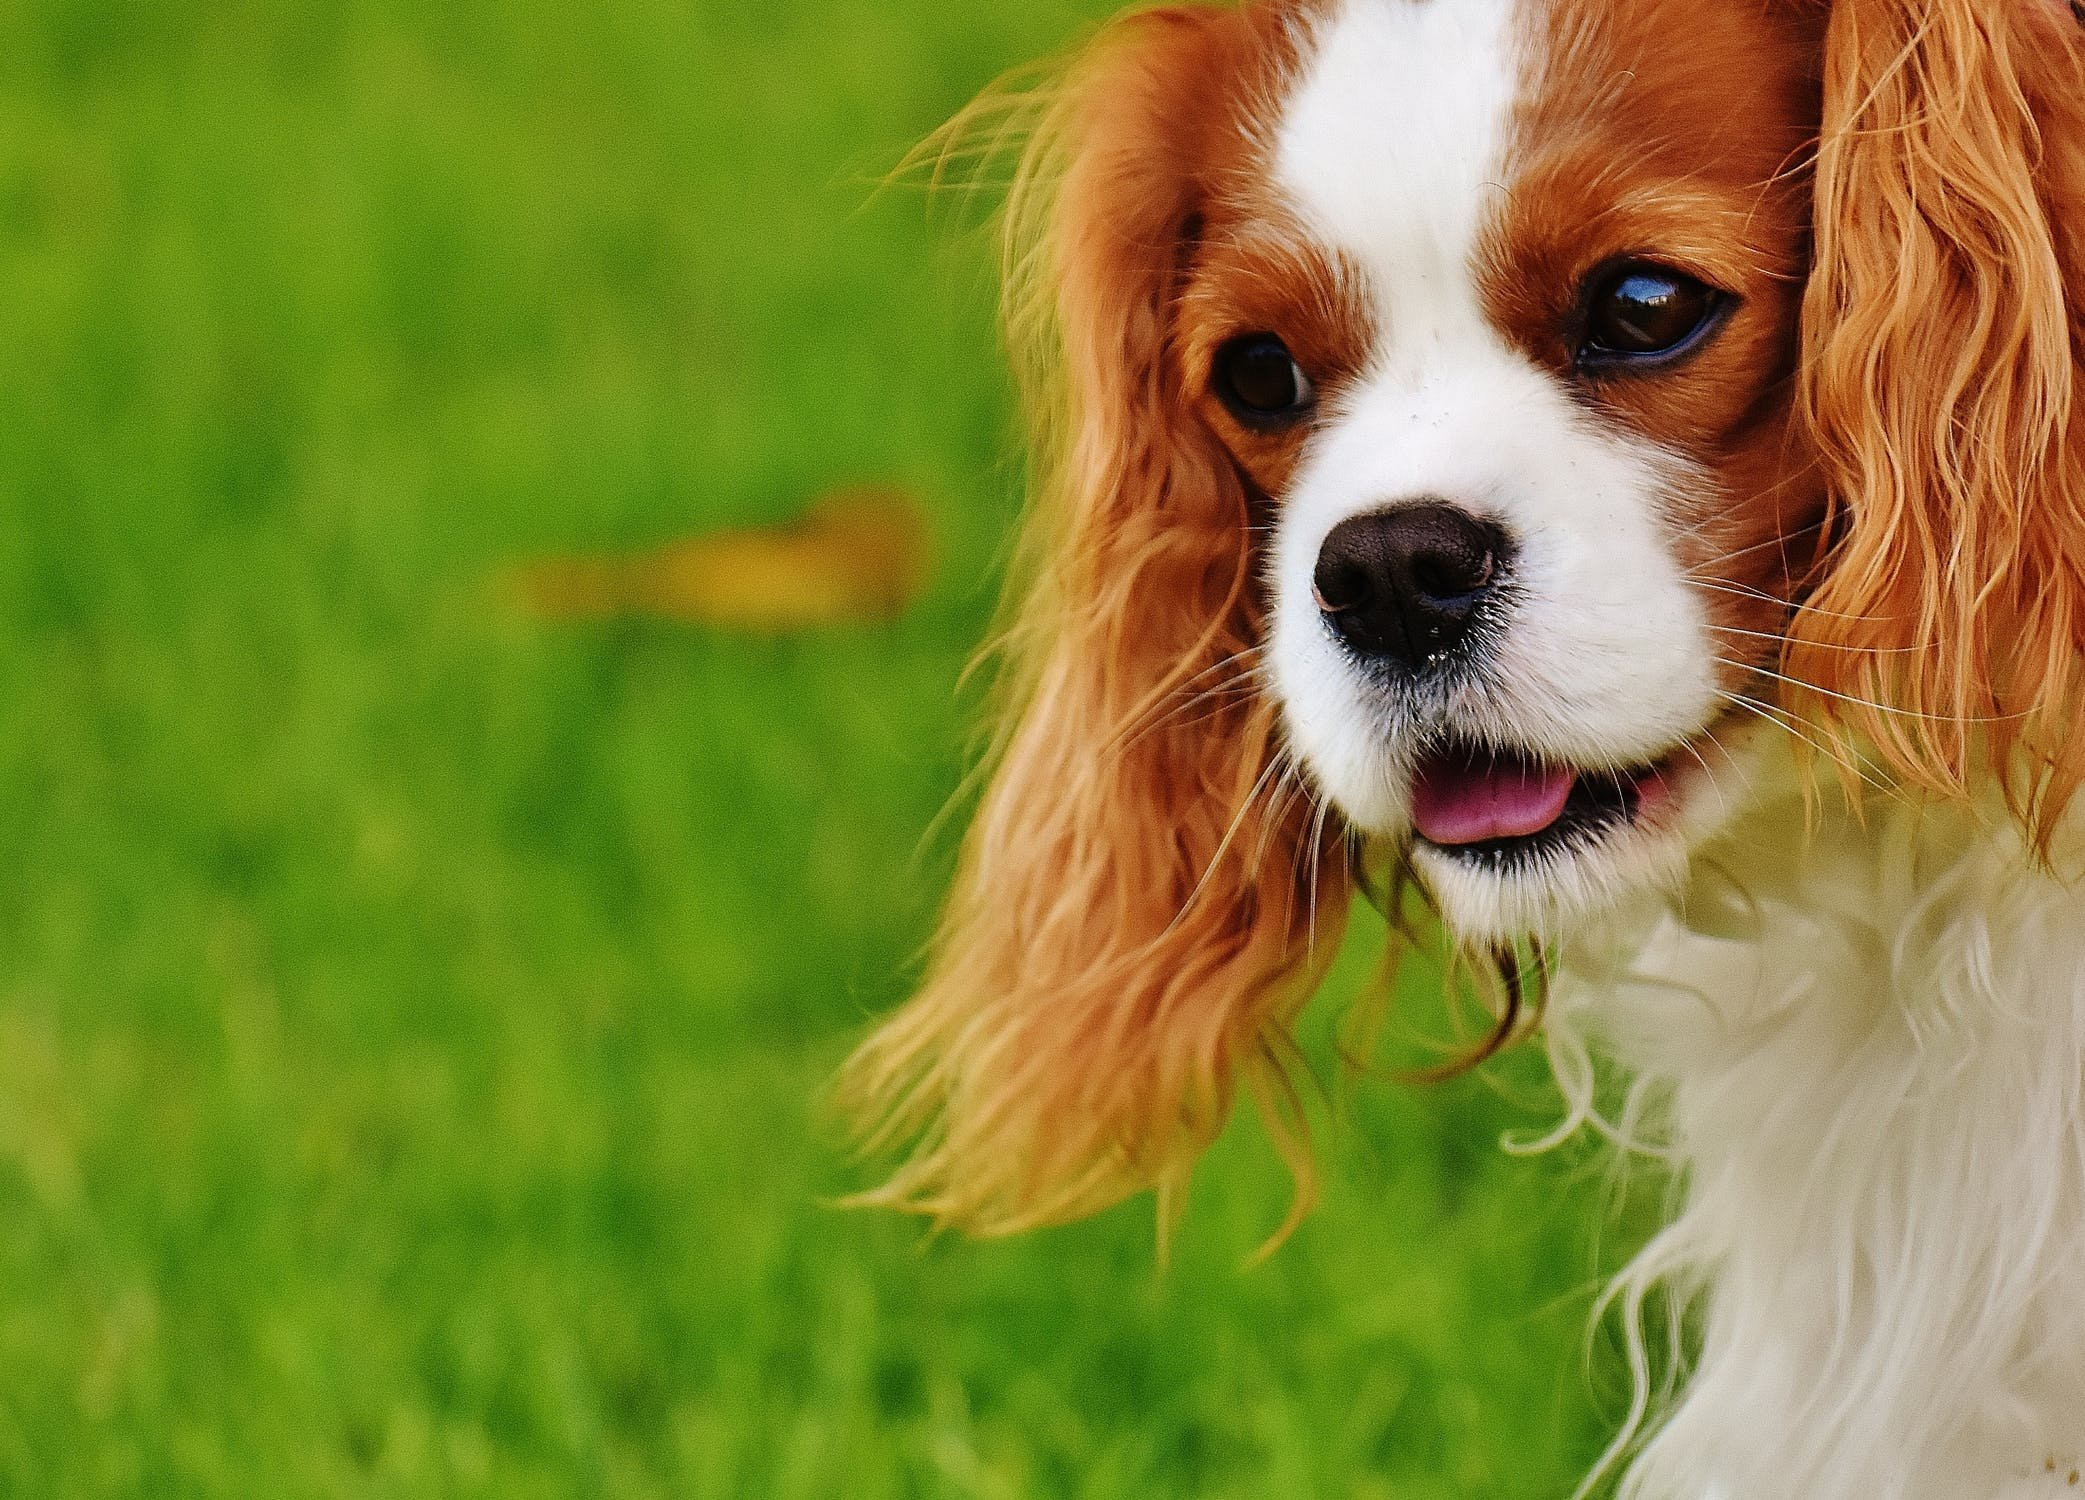 dog-cavalier-king-charles-spaniel-funny-pet-162167